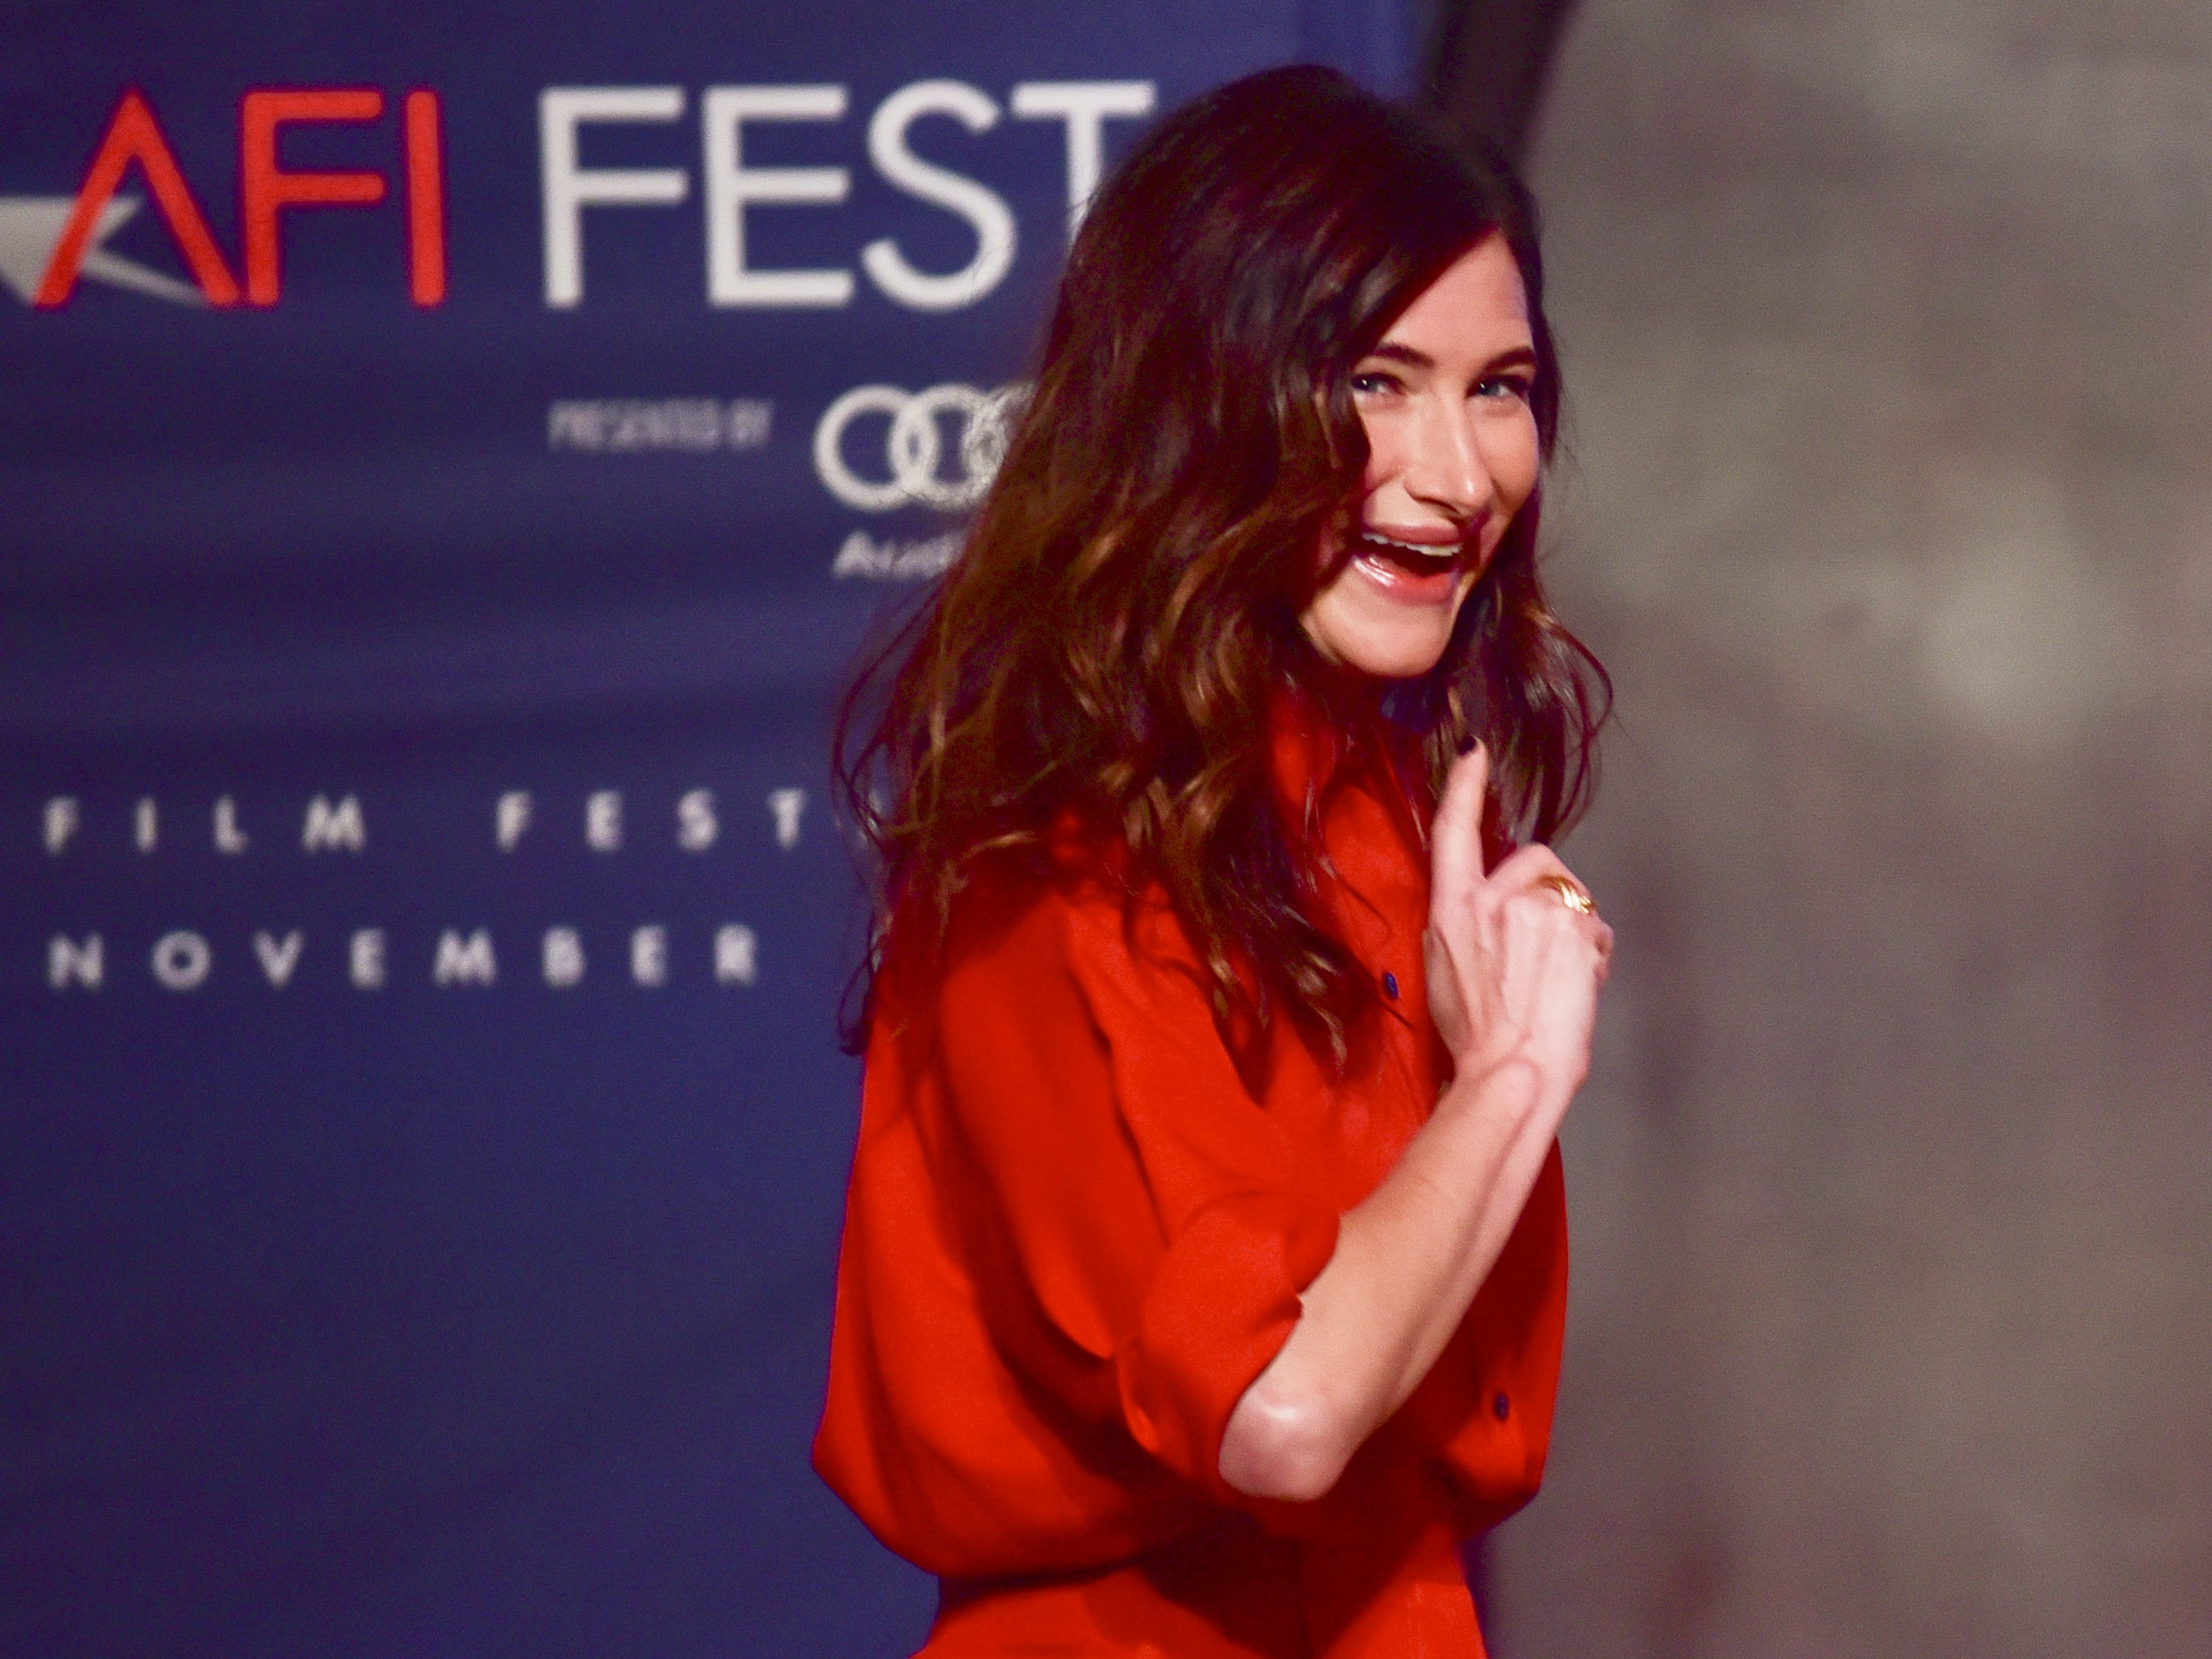 LOS ANGELES, CALIFORNIA - NOVEMBER 11: Kathryn Hahn onstage at AFI FEST 2018 Presented by Audi - Indie Contenders at The Hollywood Roosevelt Hotel on November 11, 2018 in Los Angeles, California. (Photo by Rodin Eckenroth/Getty Images for AFI) ORG XMIT: 775252718 ORIG FILE ID: 1066343160